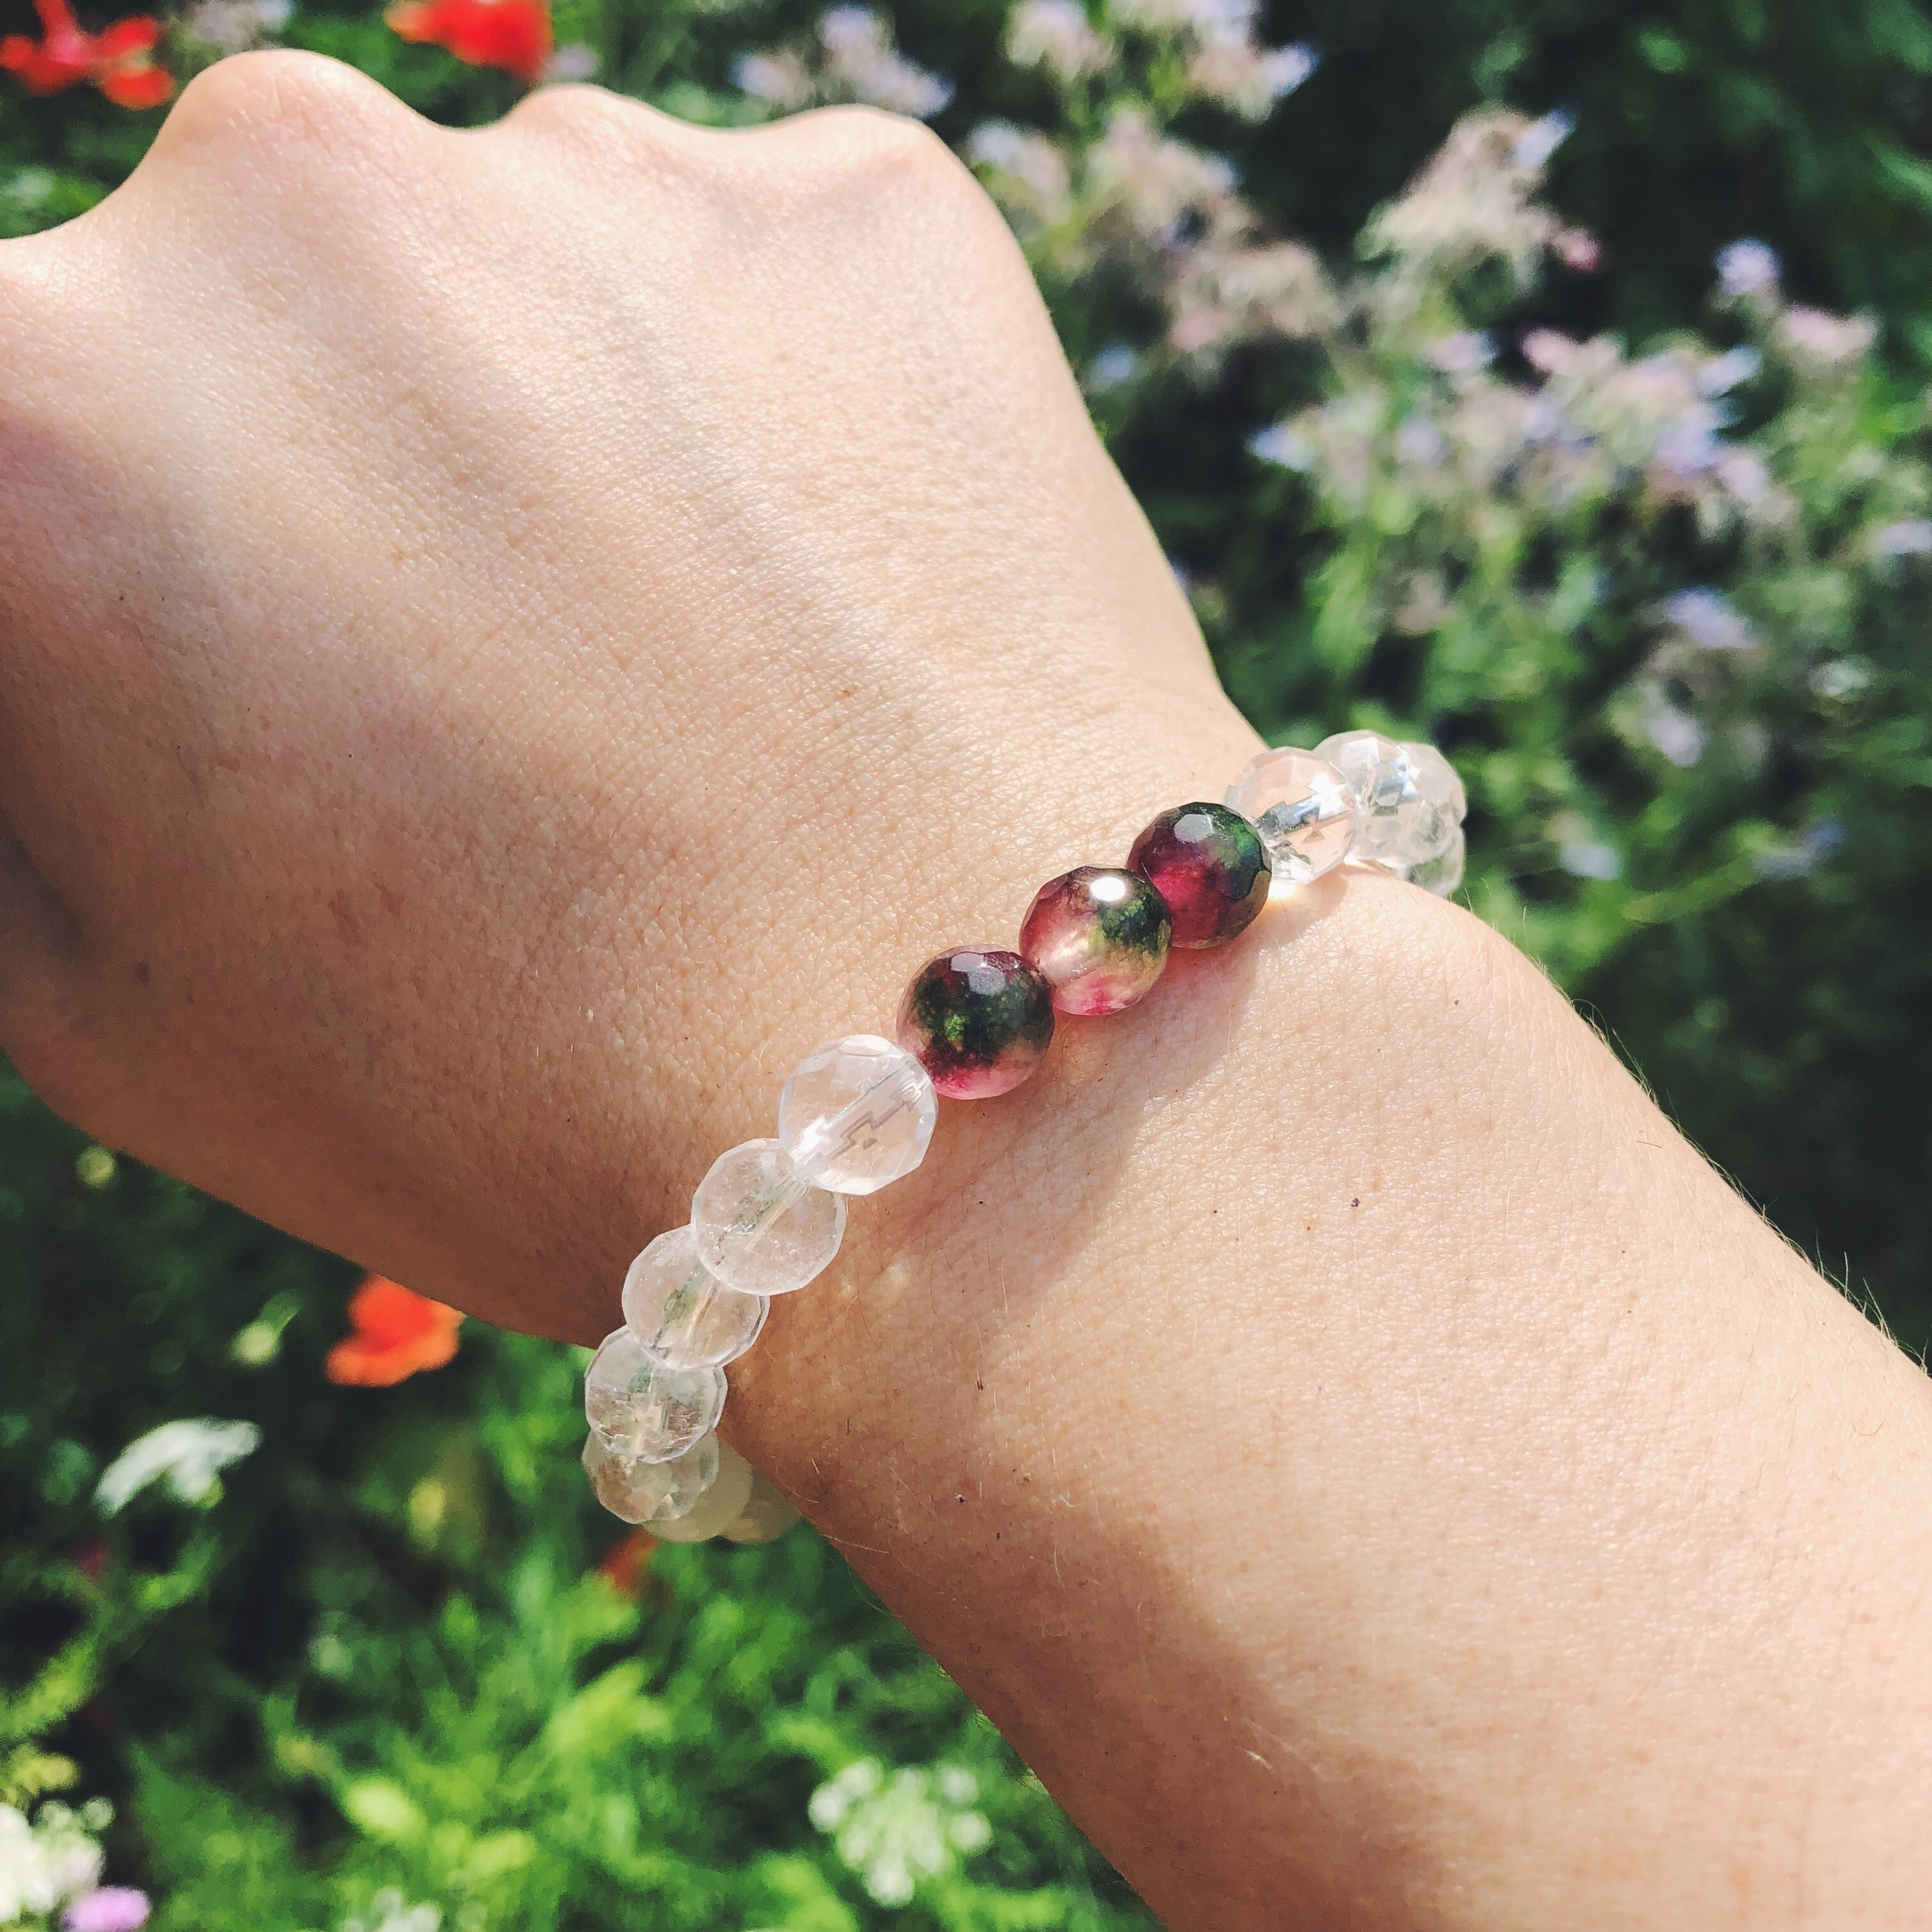 Watermelon Tourmaline + Quartz + Selenite Spirit Bracelet